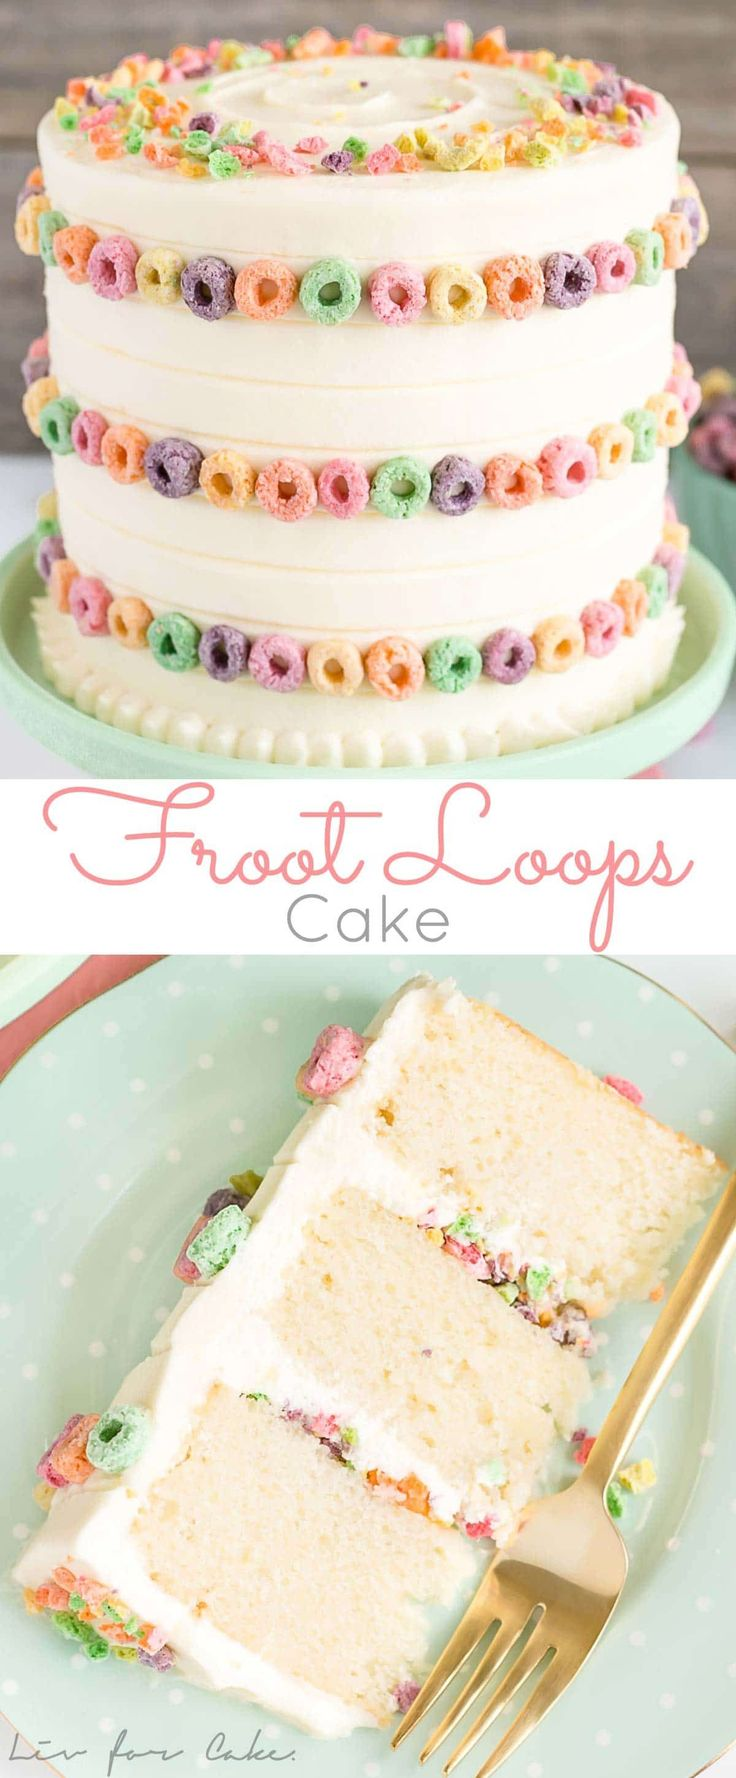 Transform your favourite breakfast cereal into this delicious Froot Loops Cake! Vanilla cake layers infused with cereal milk. | livforcake.com